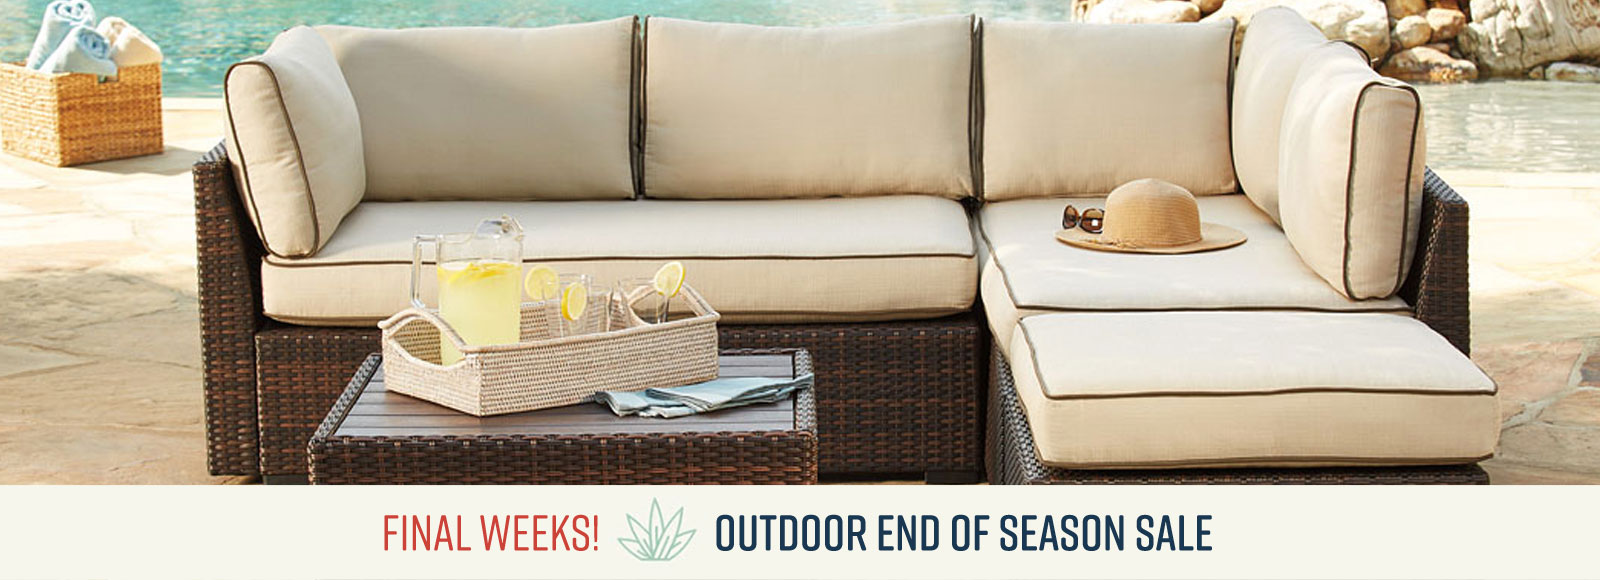 End of Season Outdoor Sale